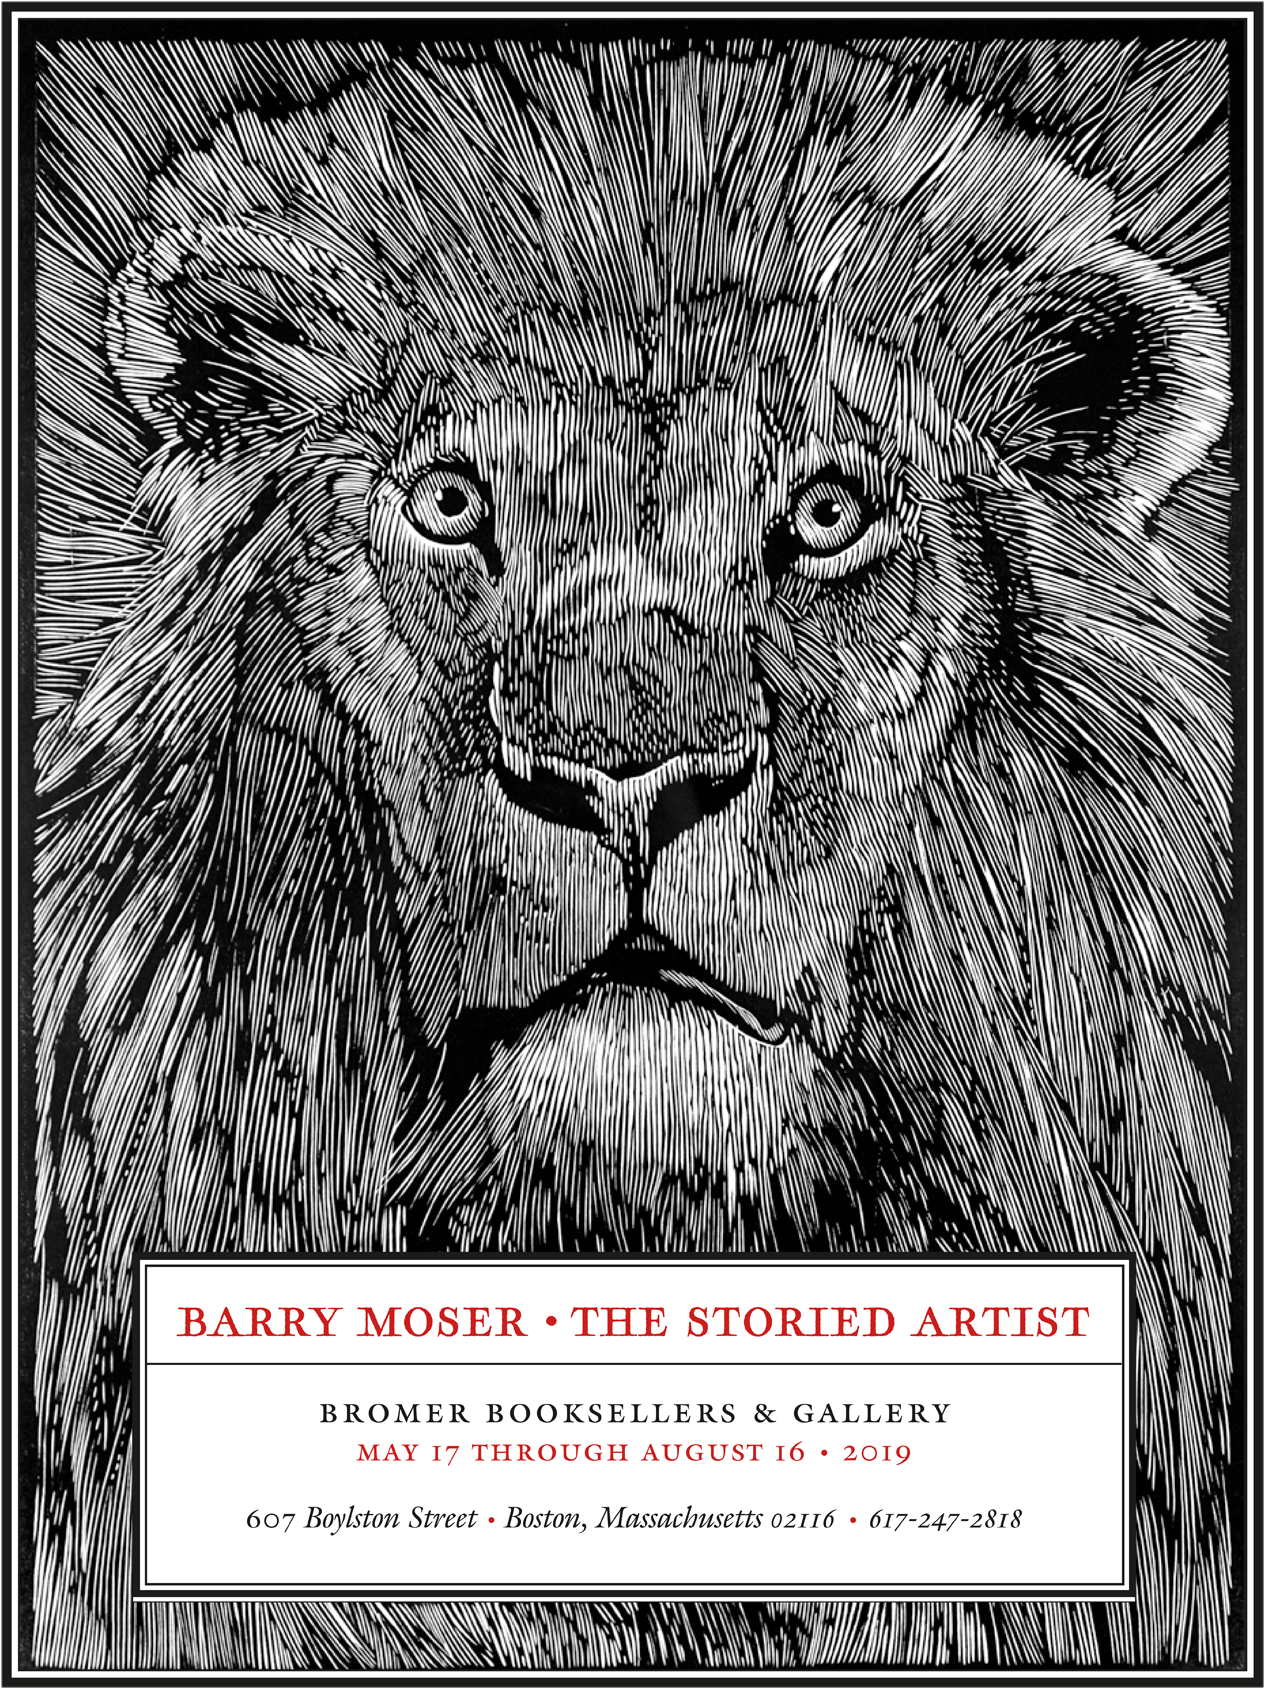 Barry Moser: The Storied Artist